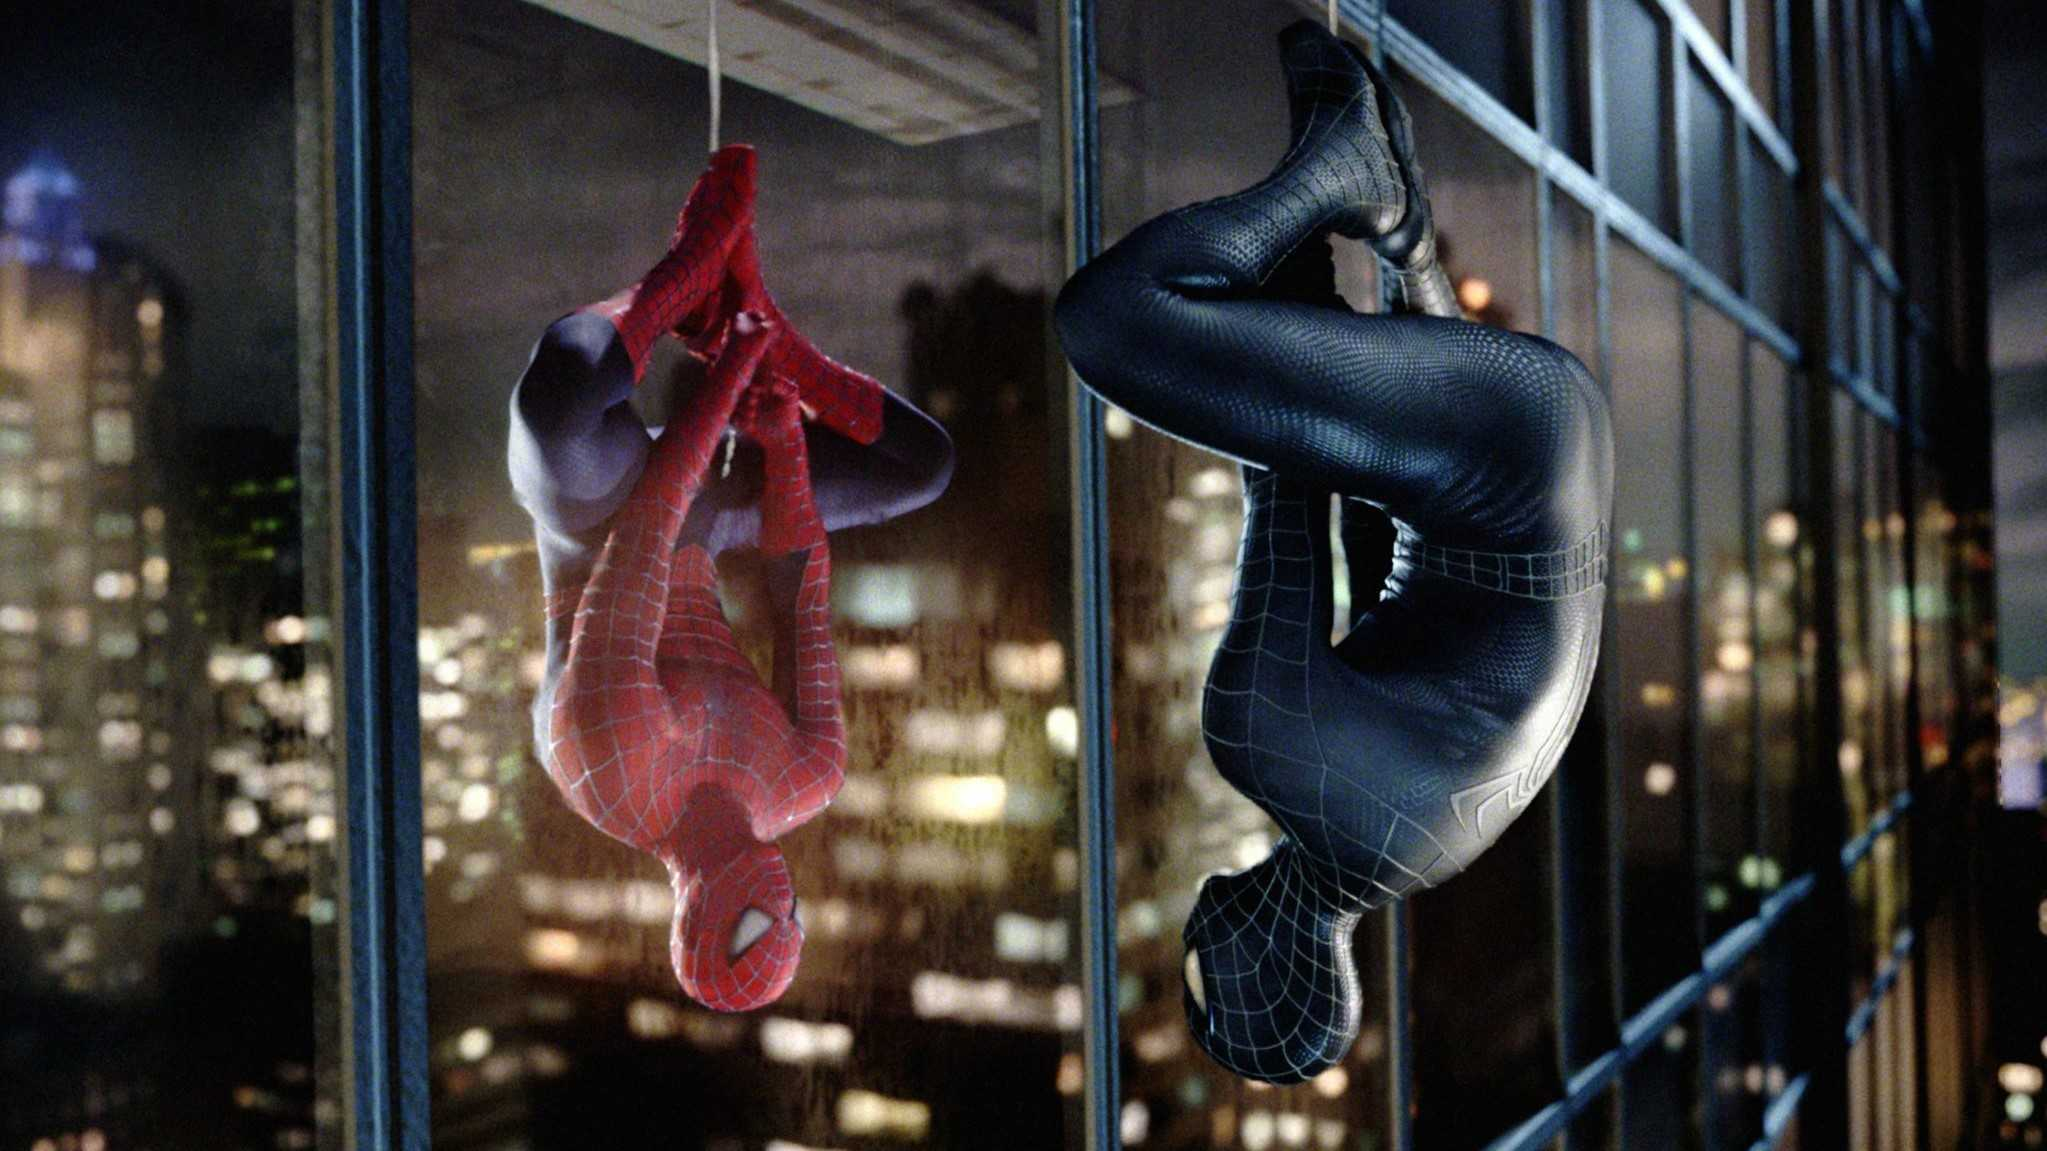 Spider Man 3 among Bad films that were successful hits at box office